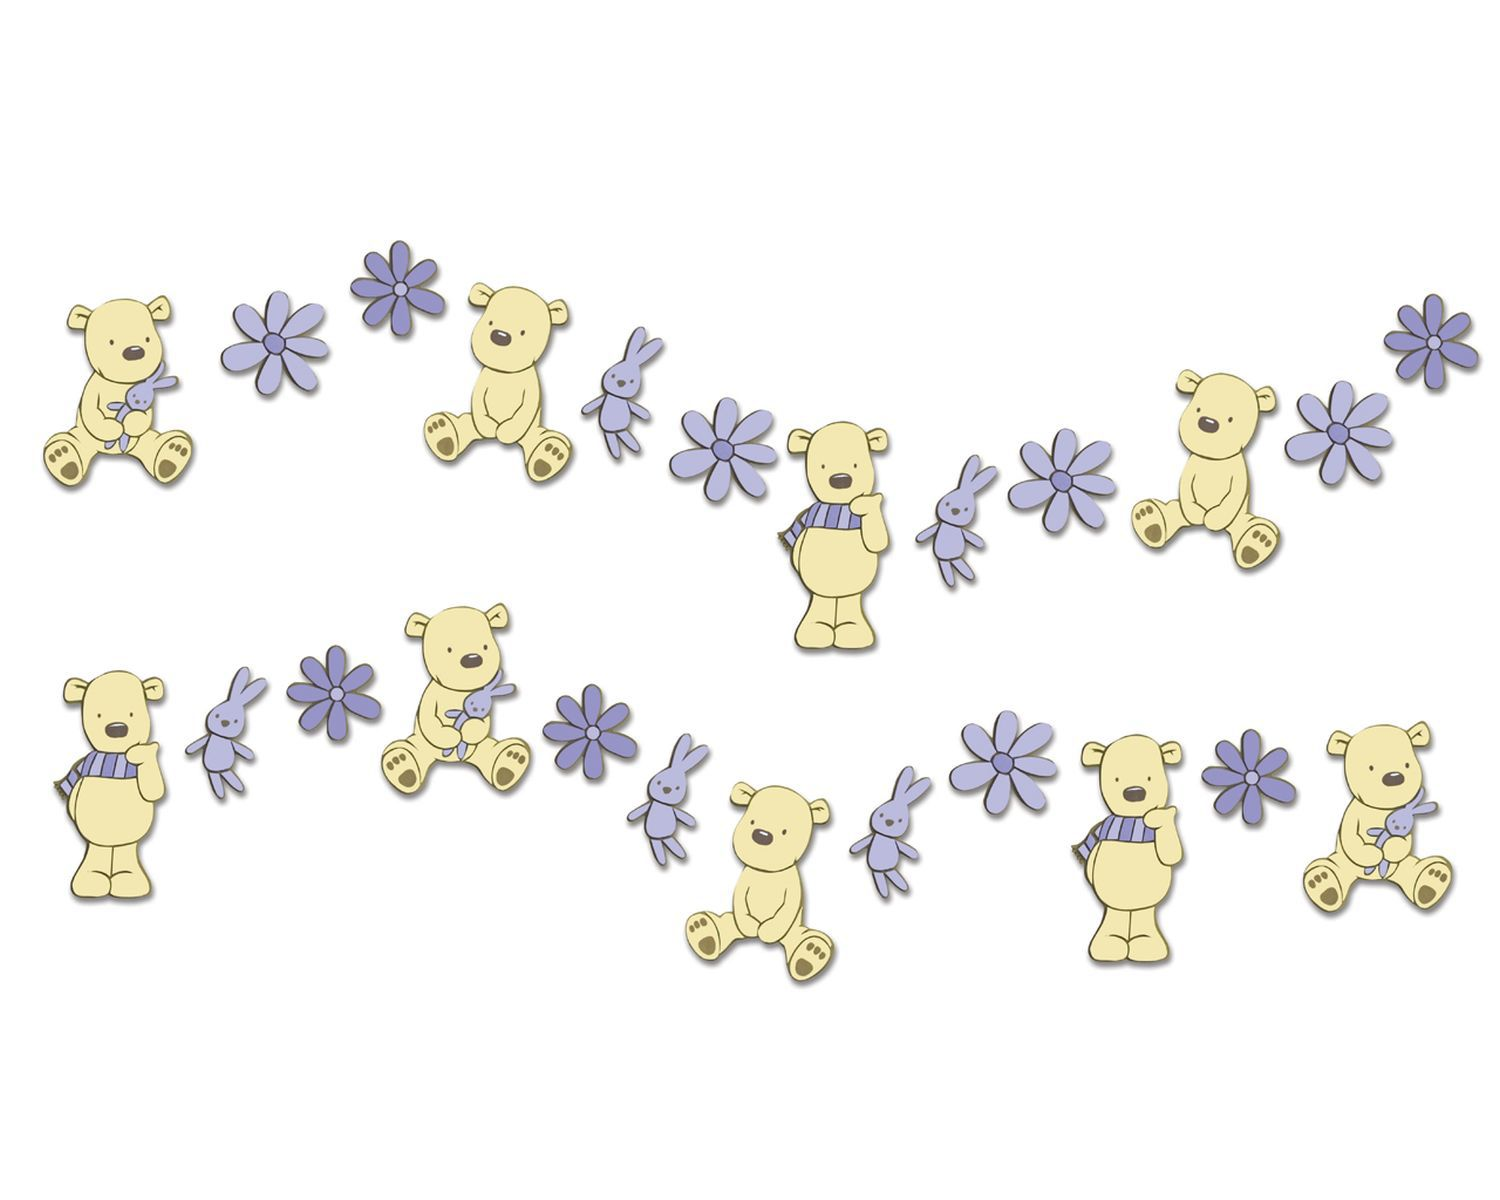 Bears Mini Foam Wall Elements 24pcs